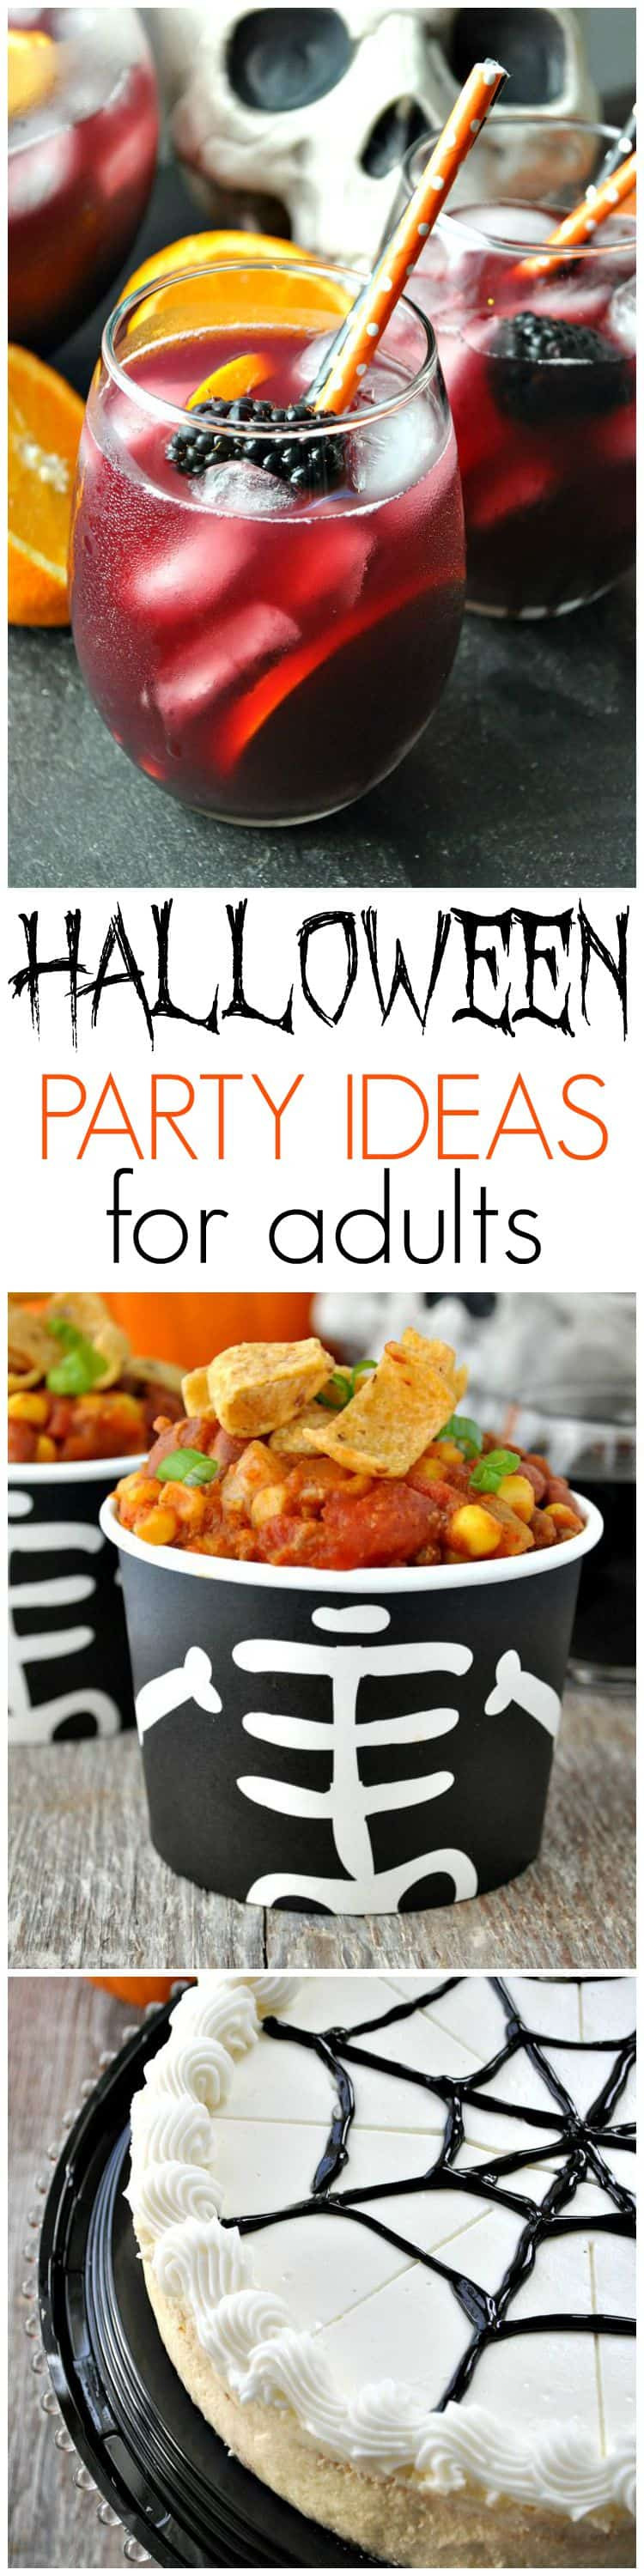 Halloween Party Ideas Adult  Slow Cooker Pumpkin Chili Halloween Party Ideas for